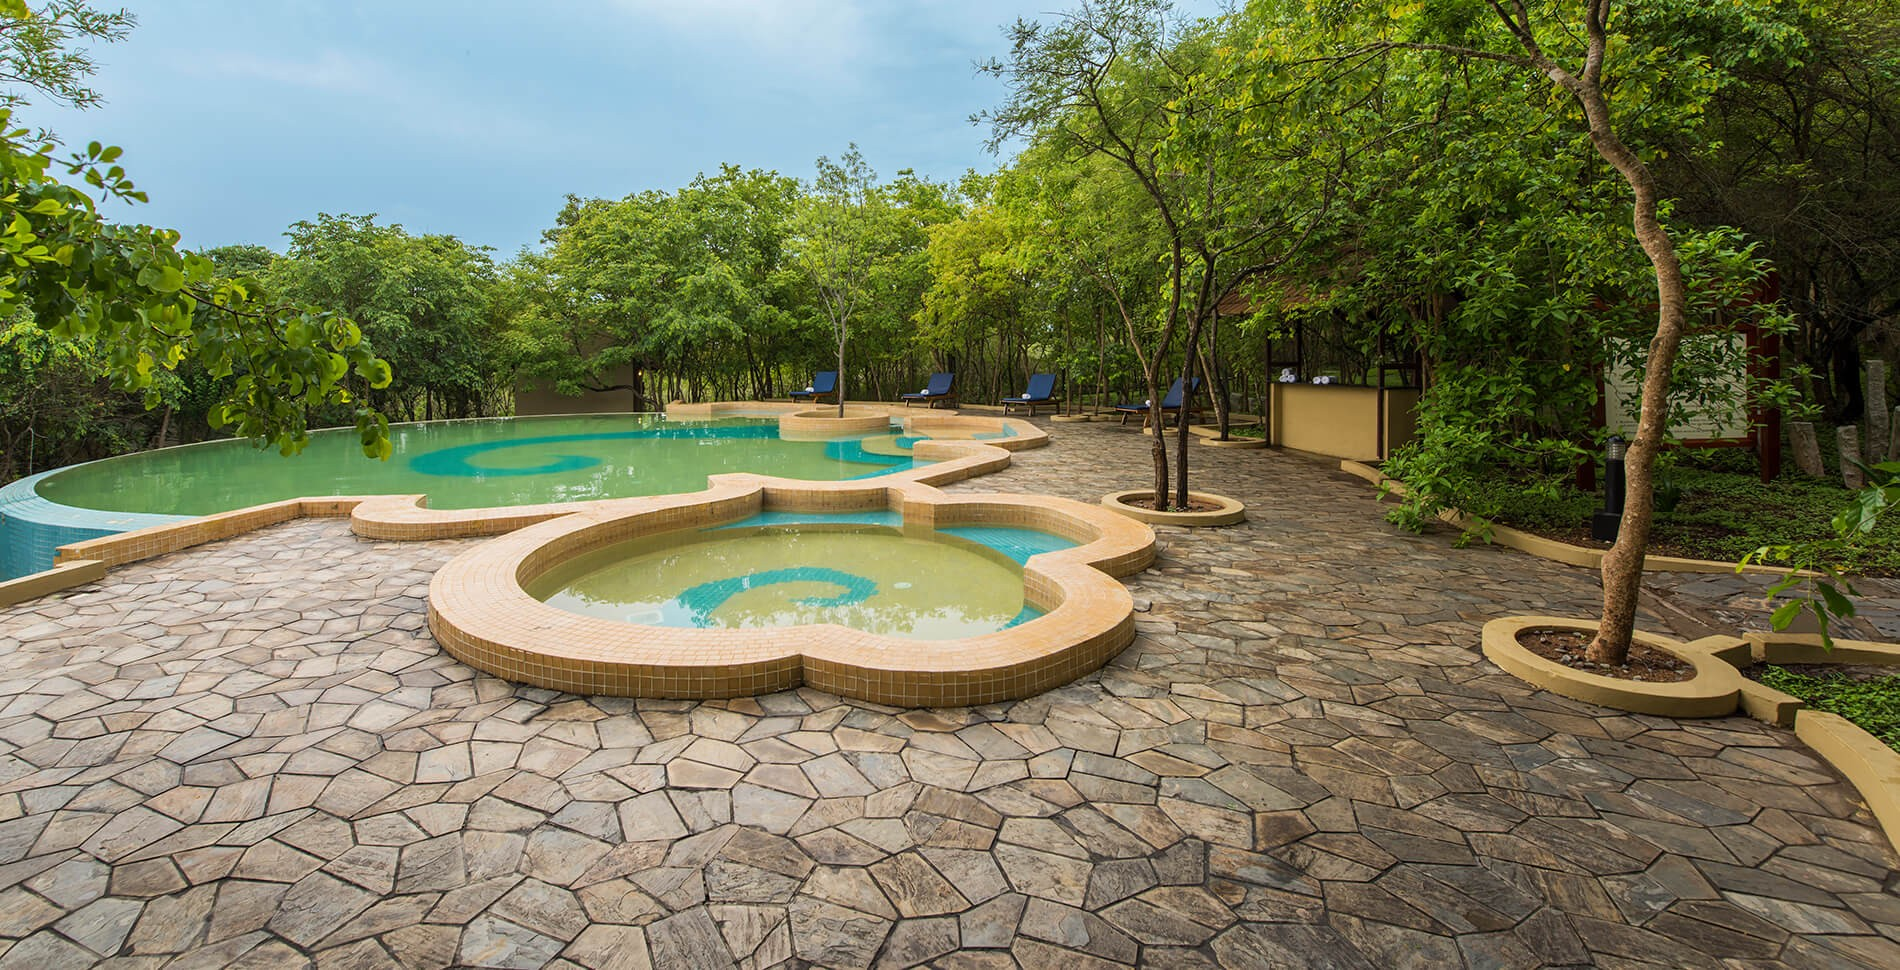 Accommodation bandipur spa bandipur bandipur resorts with swimming pool for Resorts in bandipur with swimming pool